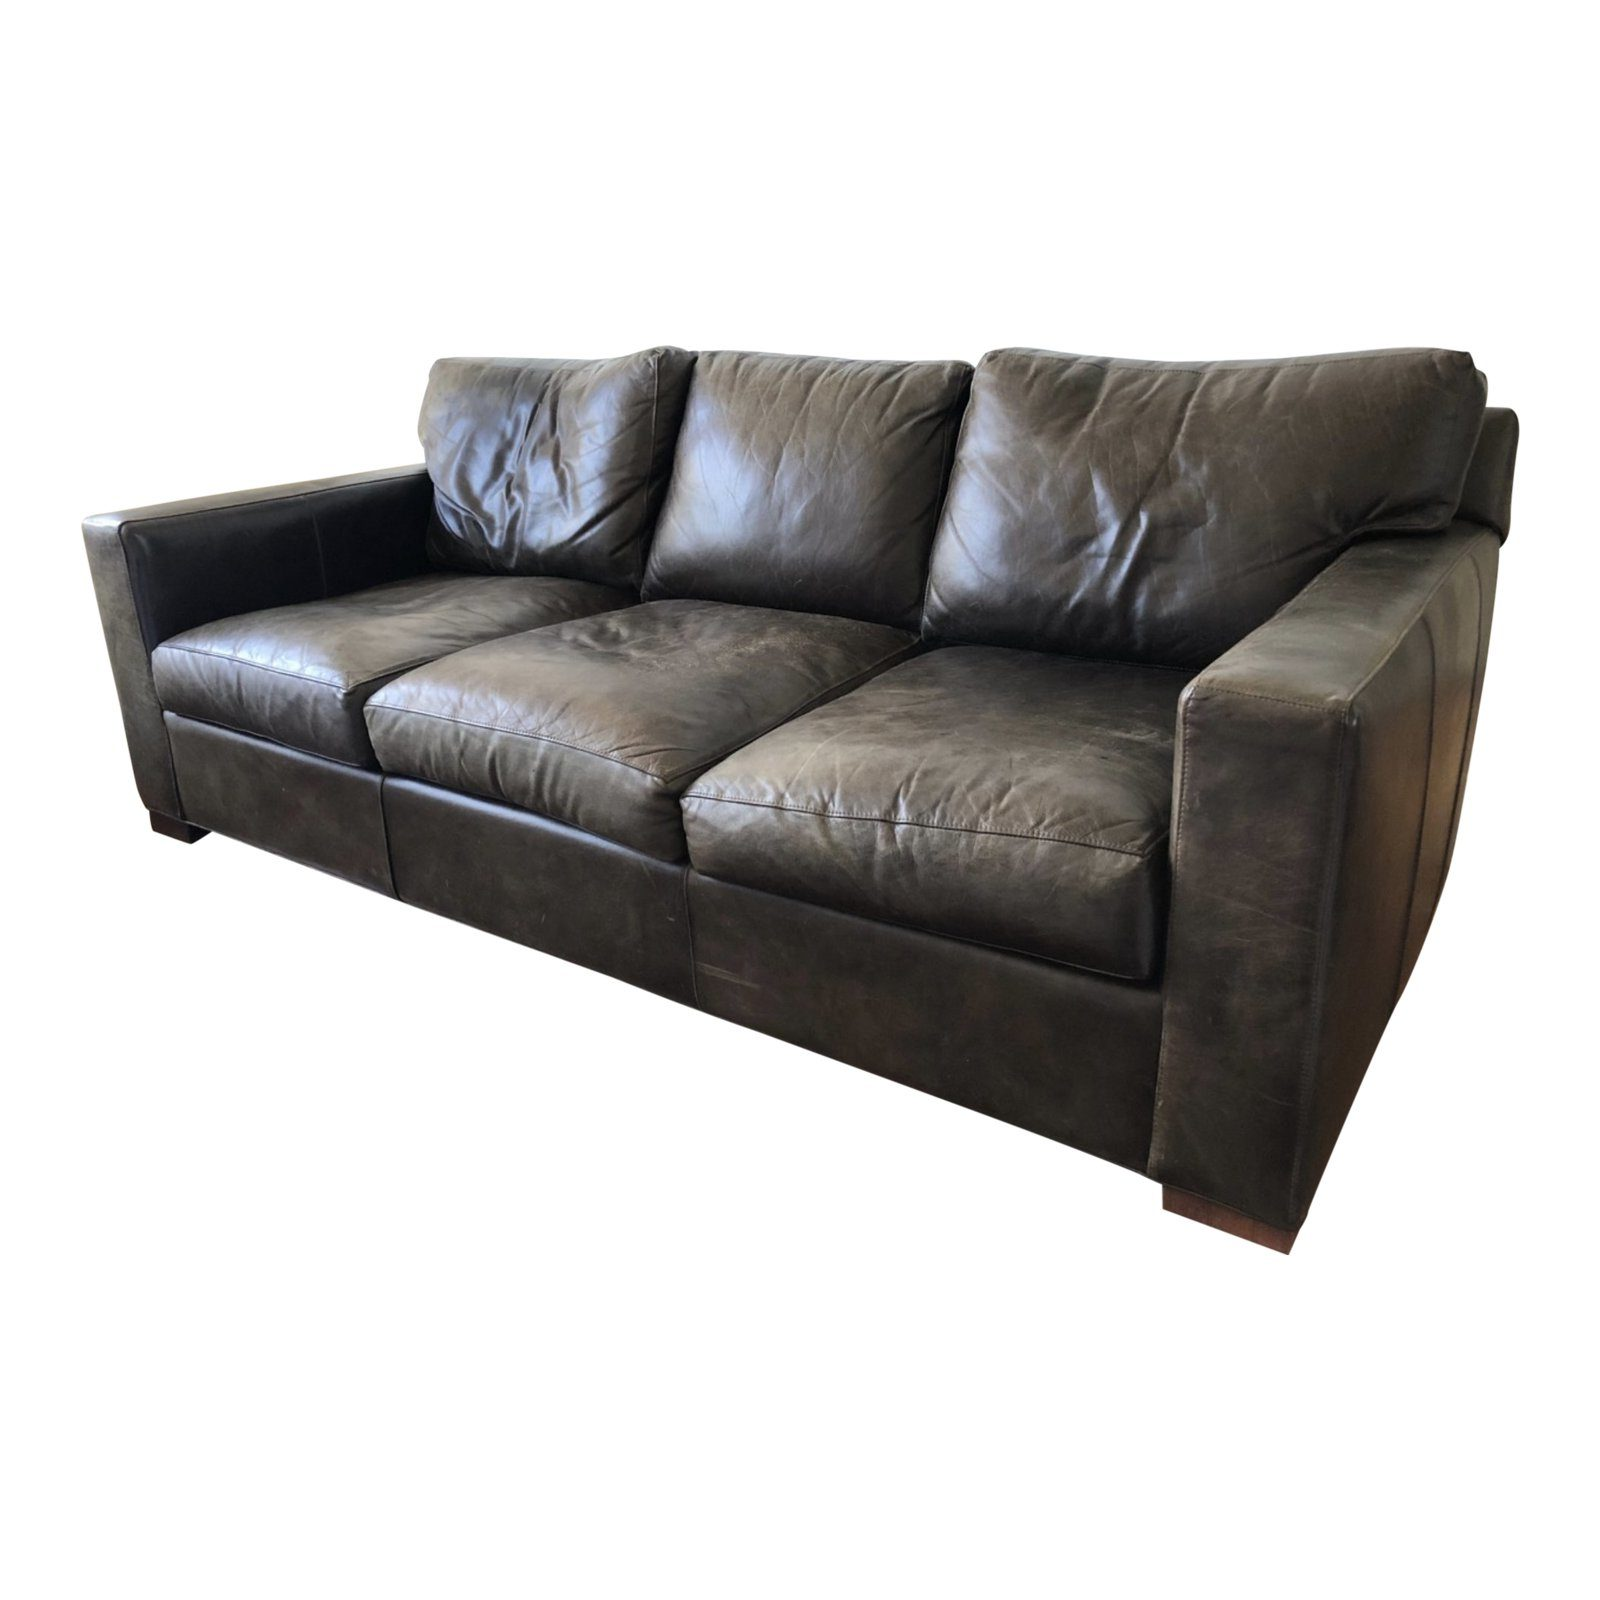 Brown Leather Sofa From Crate Barrel Original Price 3 300